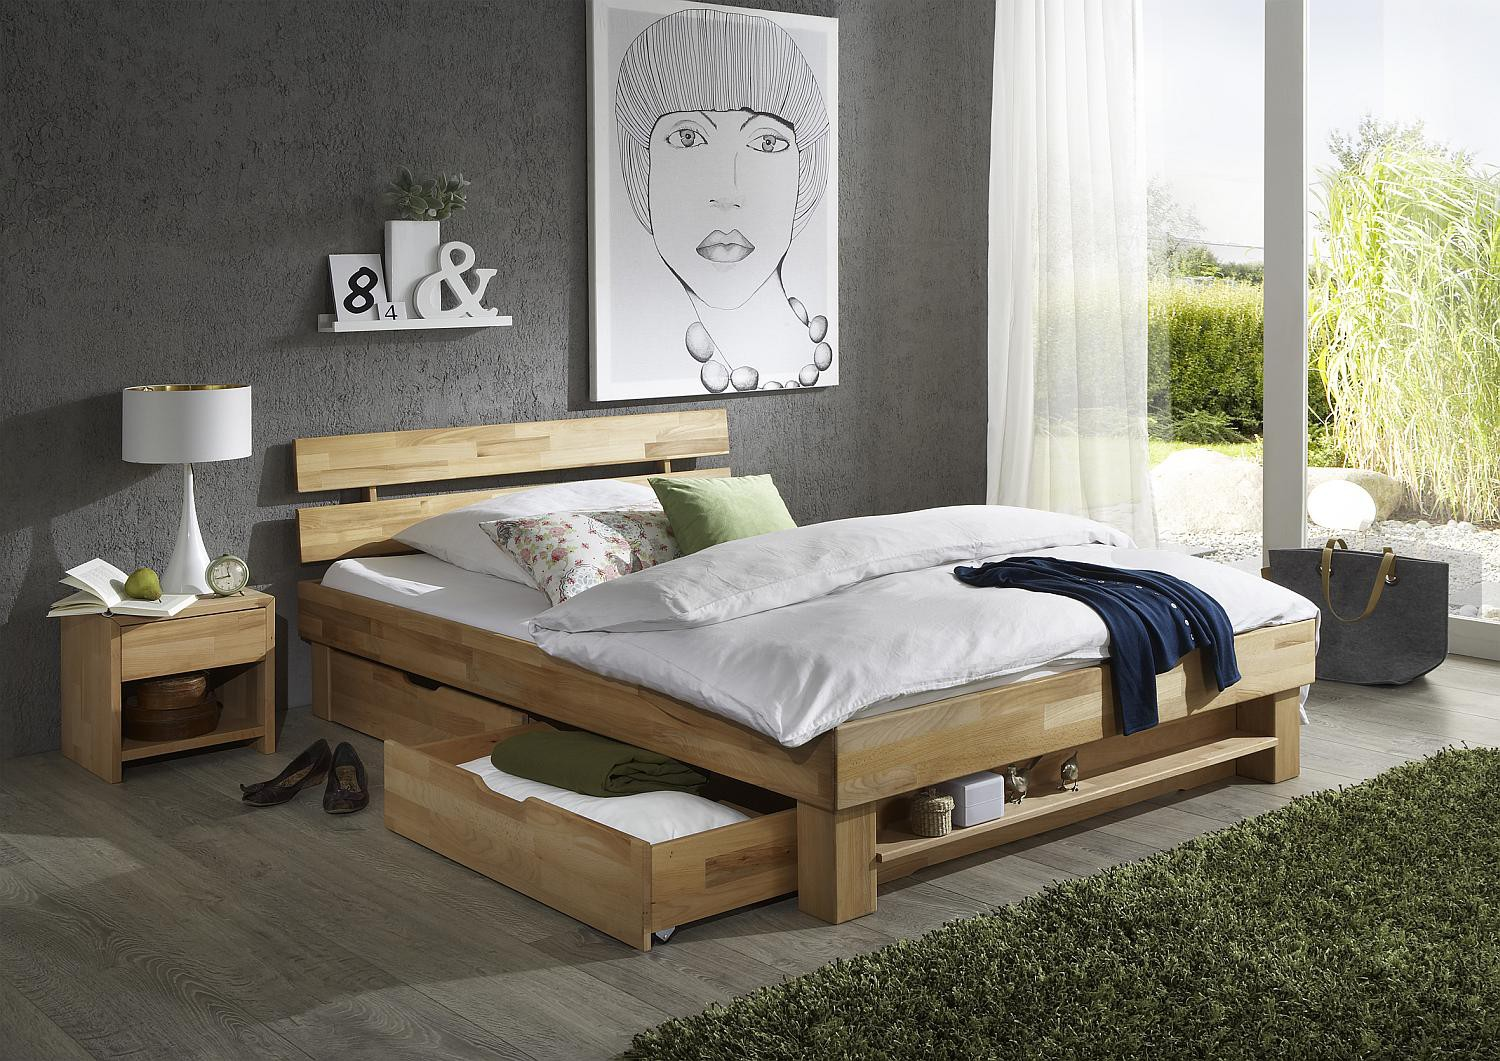 holzbett 180 x 200 cm kernbuche massiv judith. Black Bedroom Furniture Sets. Home Design Ideas